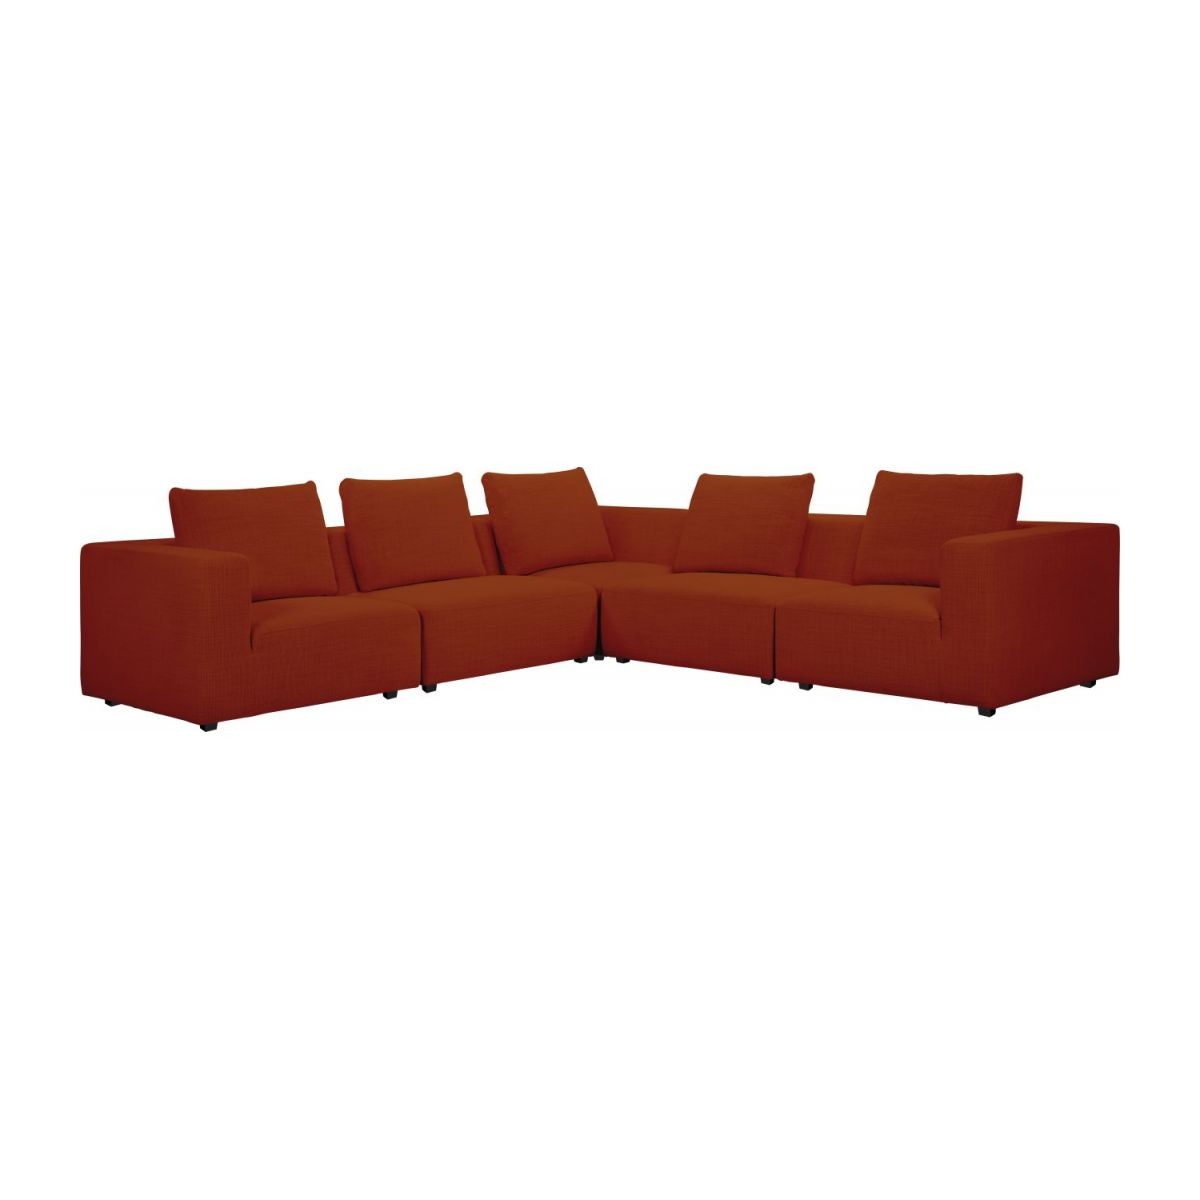 Canapé d'angle 5 places en tissu Fasoli warm red rock n°3